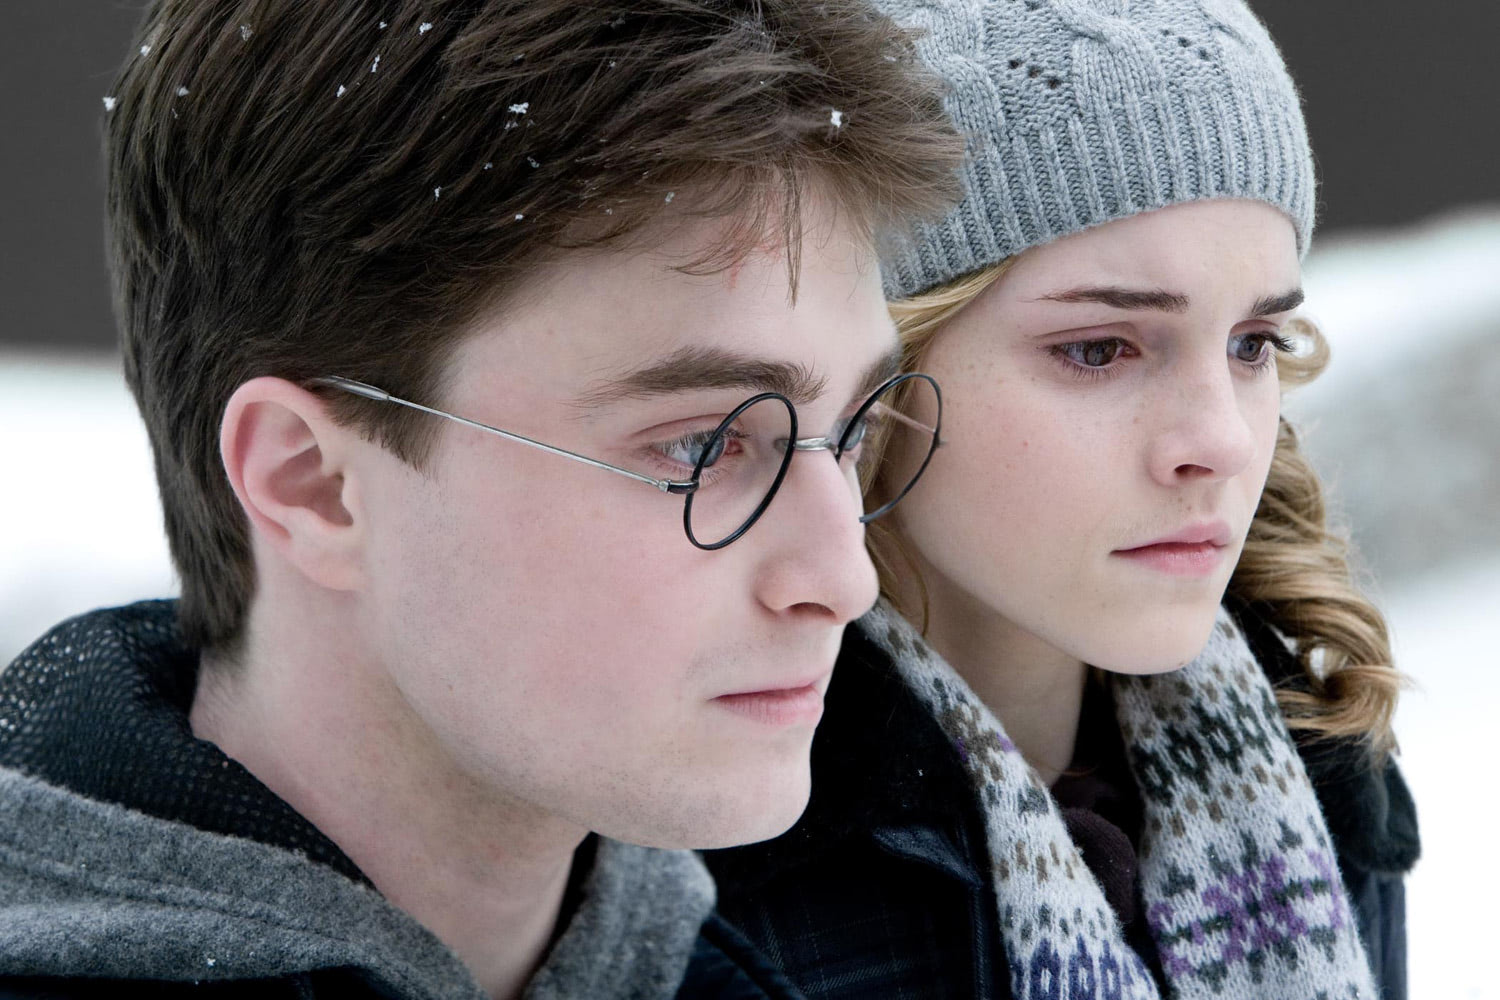 Harry and Hermione in winter